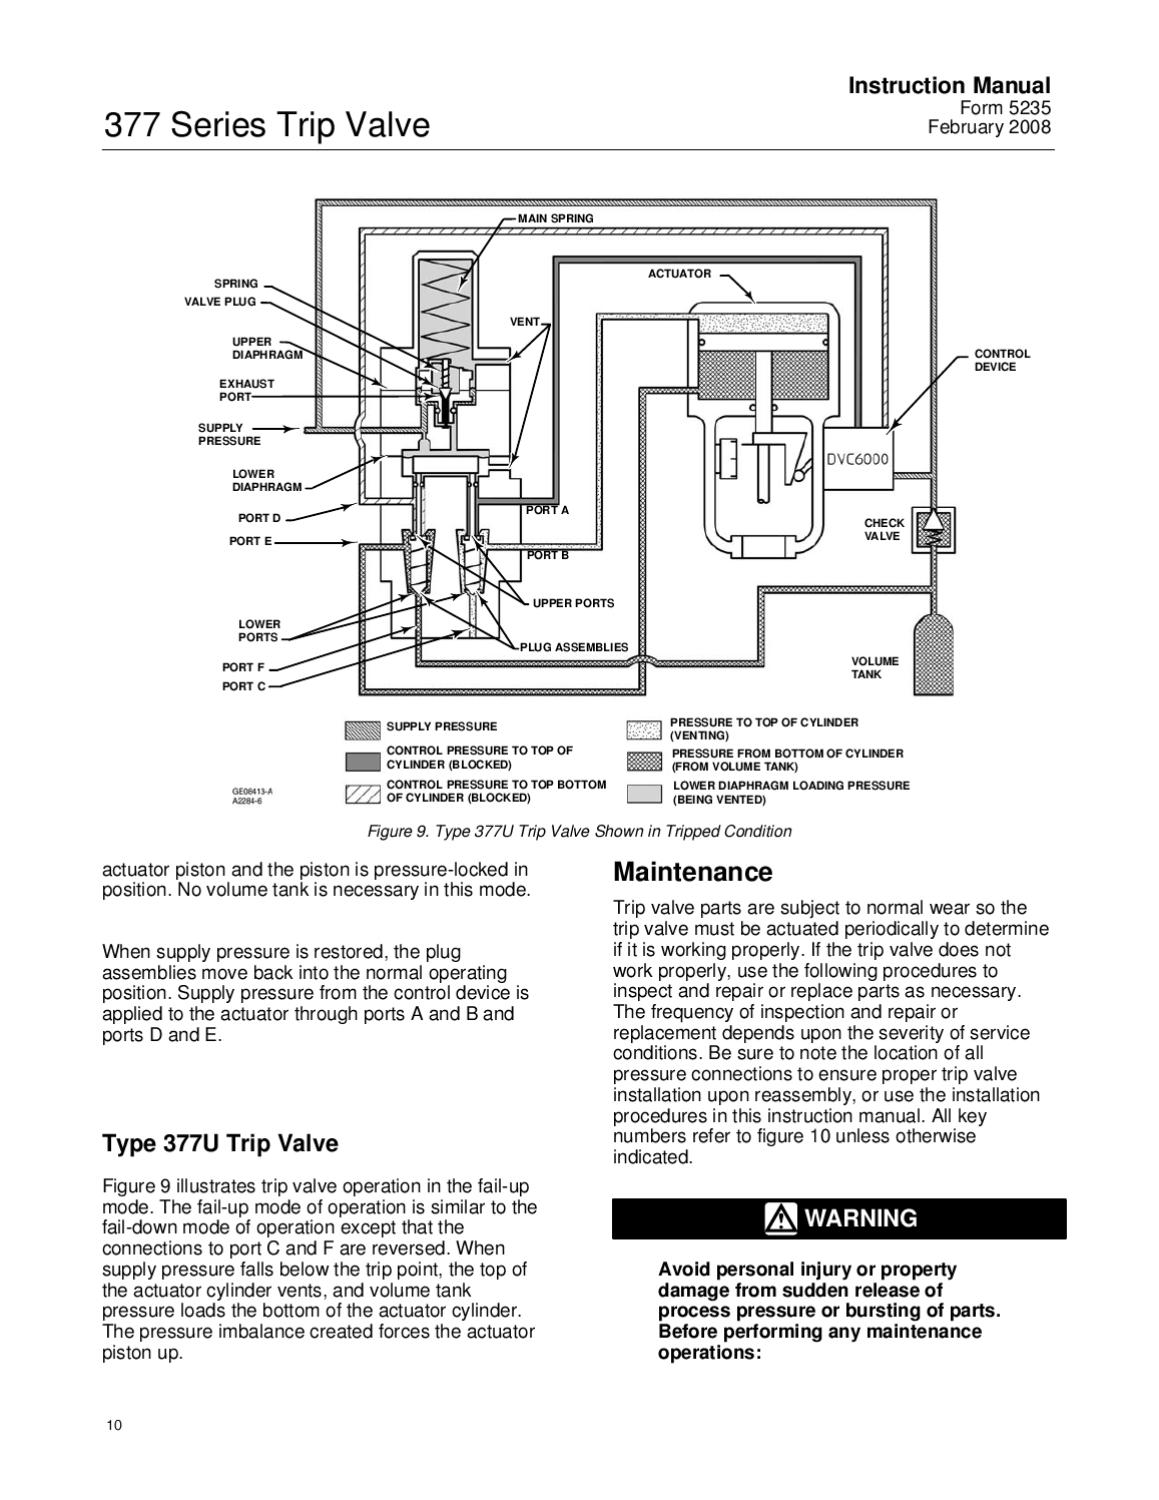 377 Trip Valve Instruction Manual Feb 2008 by RMC Process Controls & Filtration, Inc. - Issuu